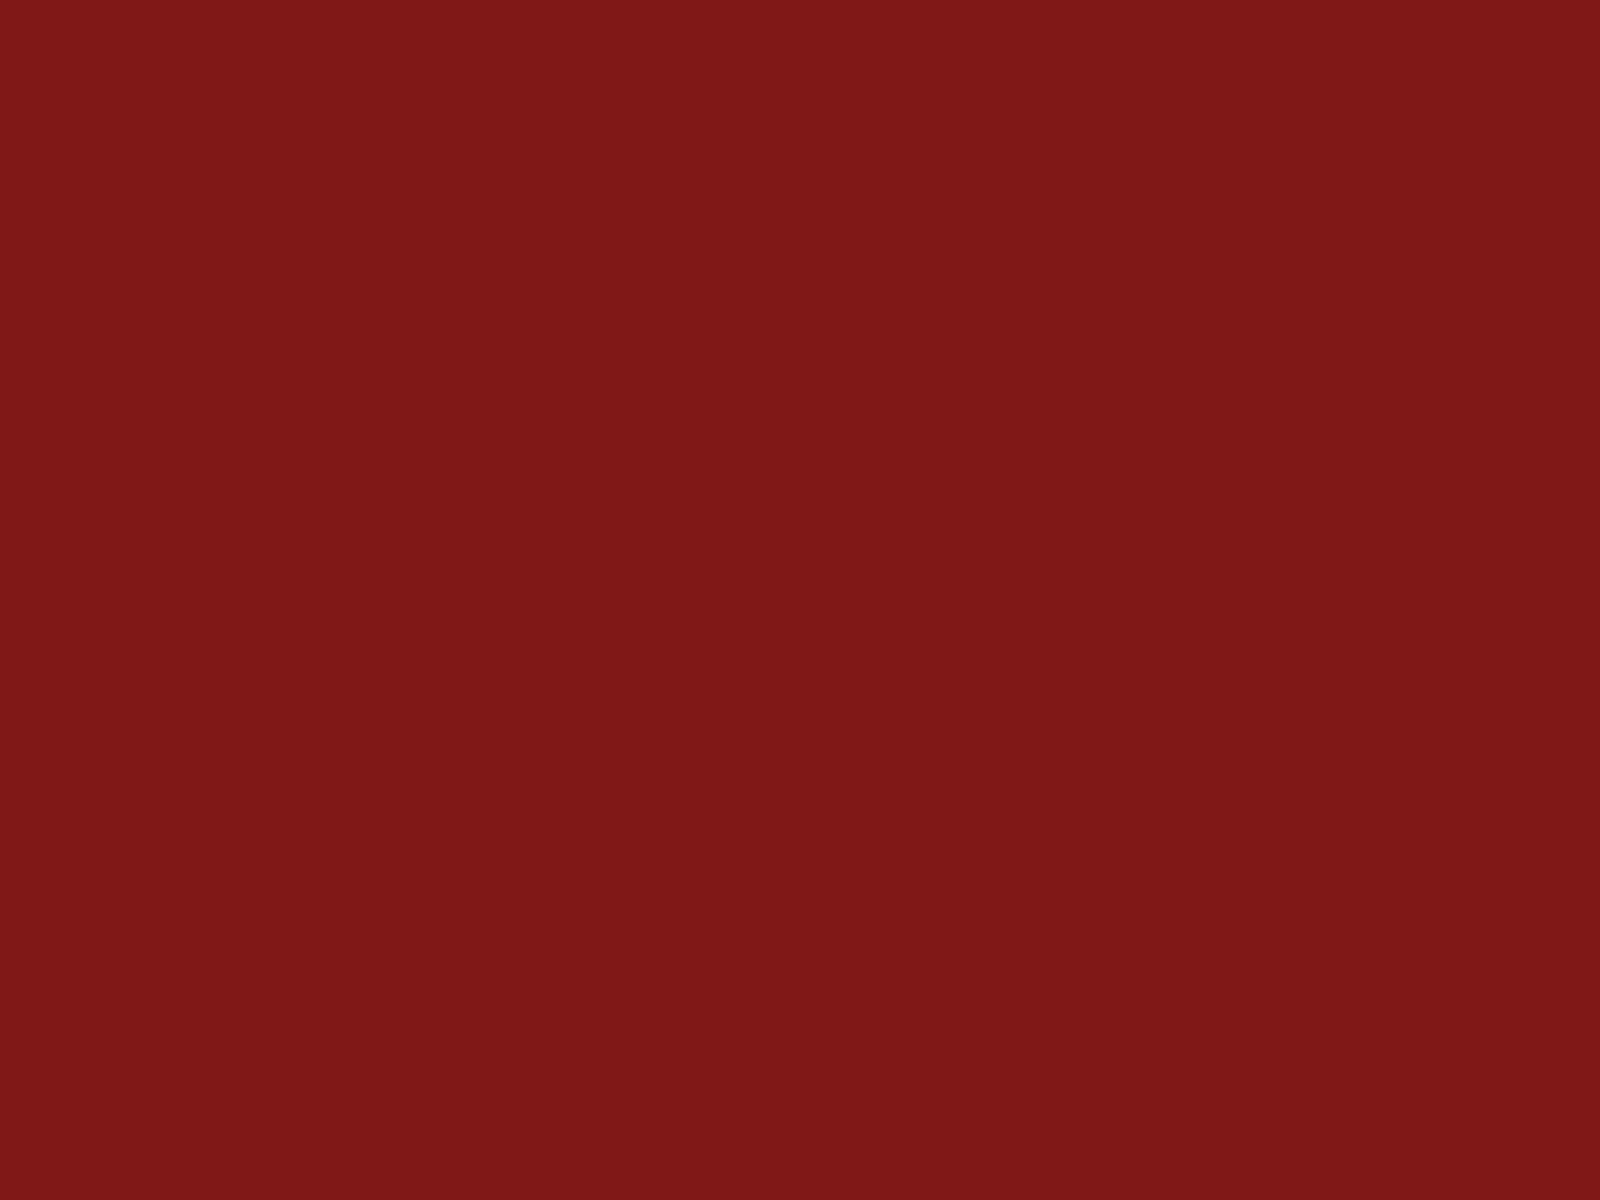 1600x1200 Falu Red Solid Color Background